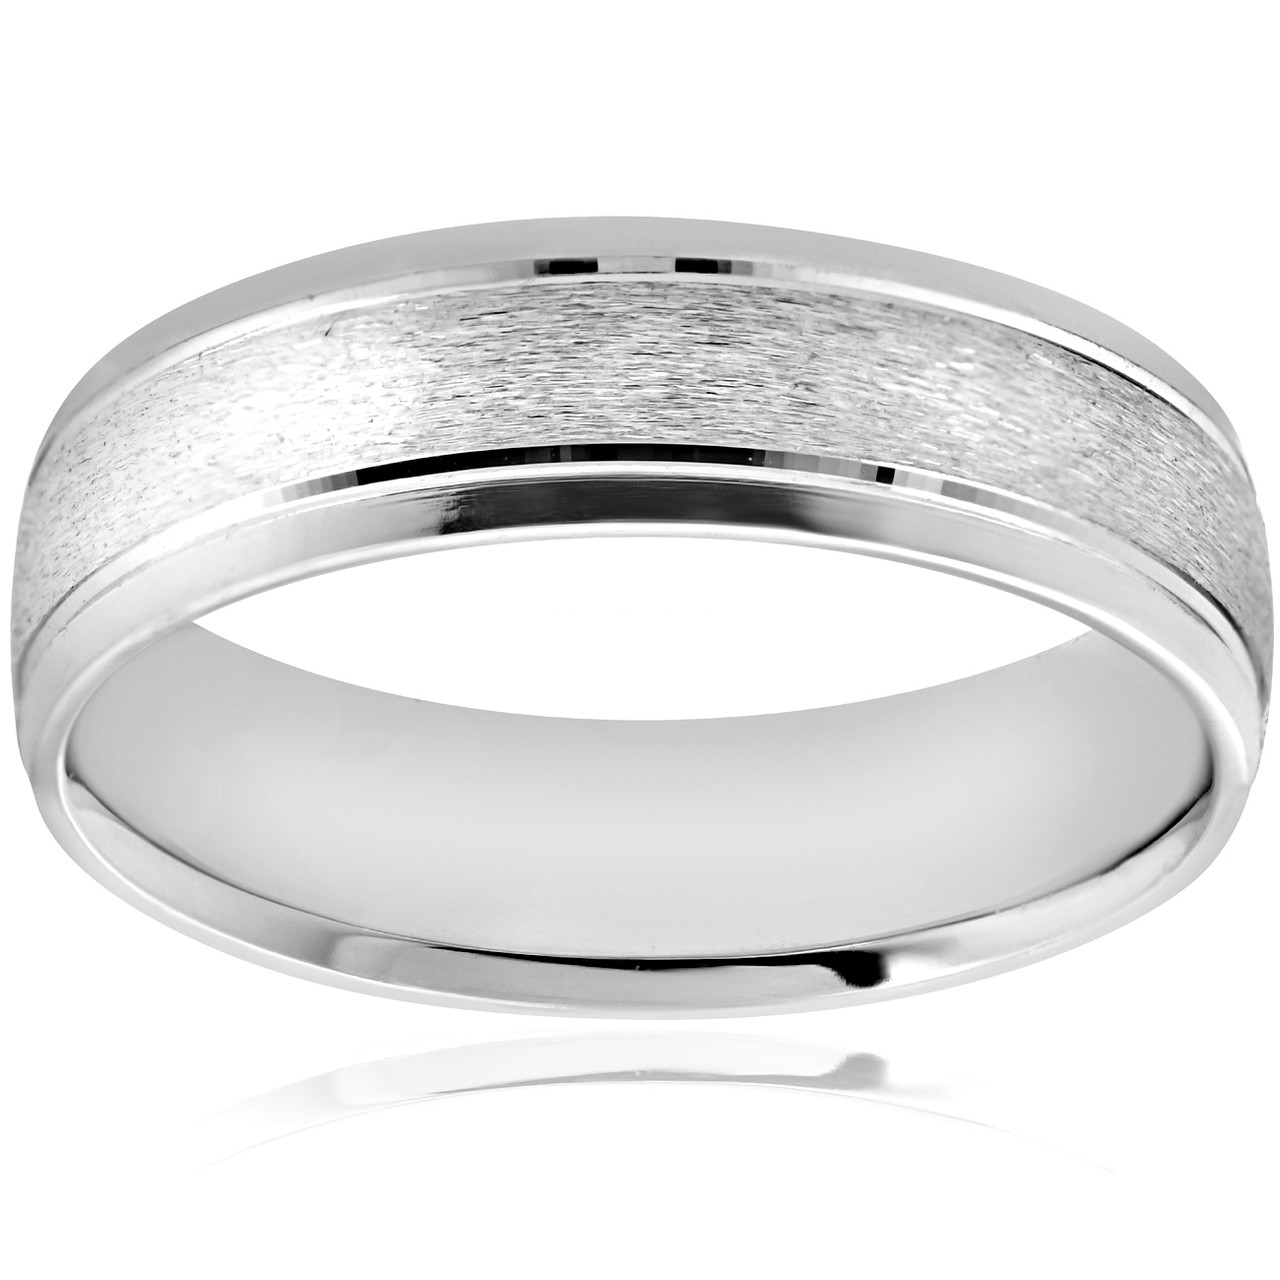 f516d6c1884dbc 6MM Platinum Mens Wedding Band Brushed Comfort Fit Flat Ring. WB5611PT.  https://partnerconnect.pompeii3.com/appfiles/itemimages/5a6002fc40959.